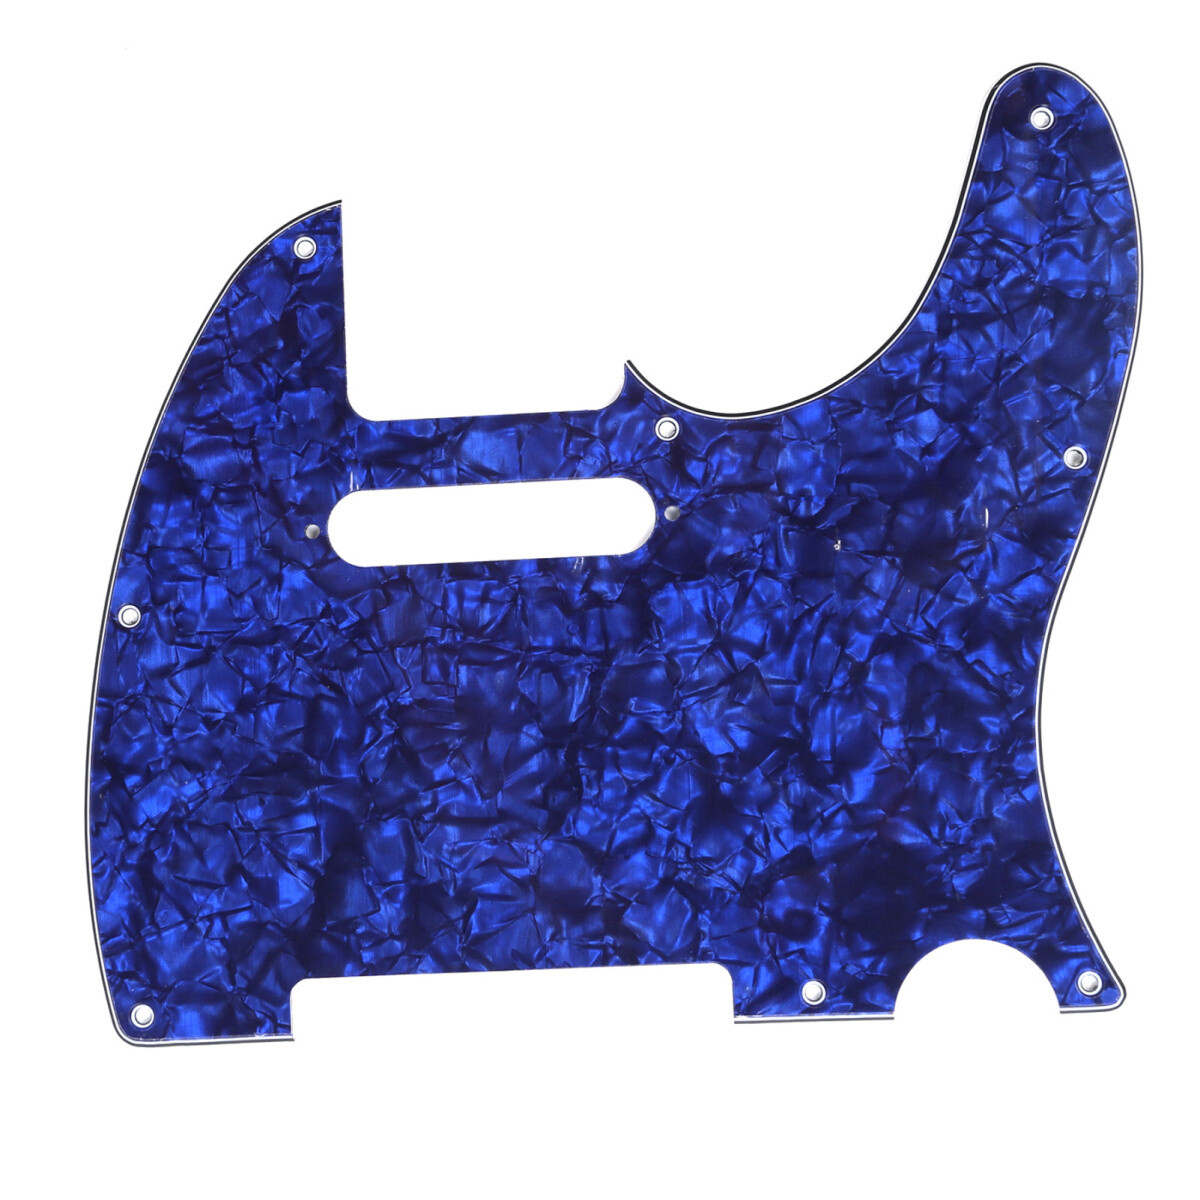 Brio 8 Hole Guitar Tele® Pickguard RH 4 Ply Blue Pearloid